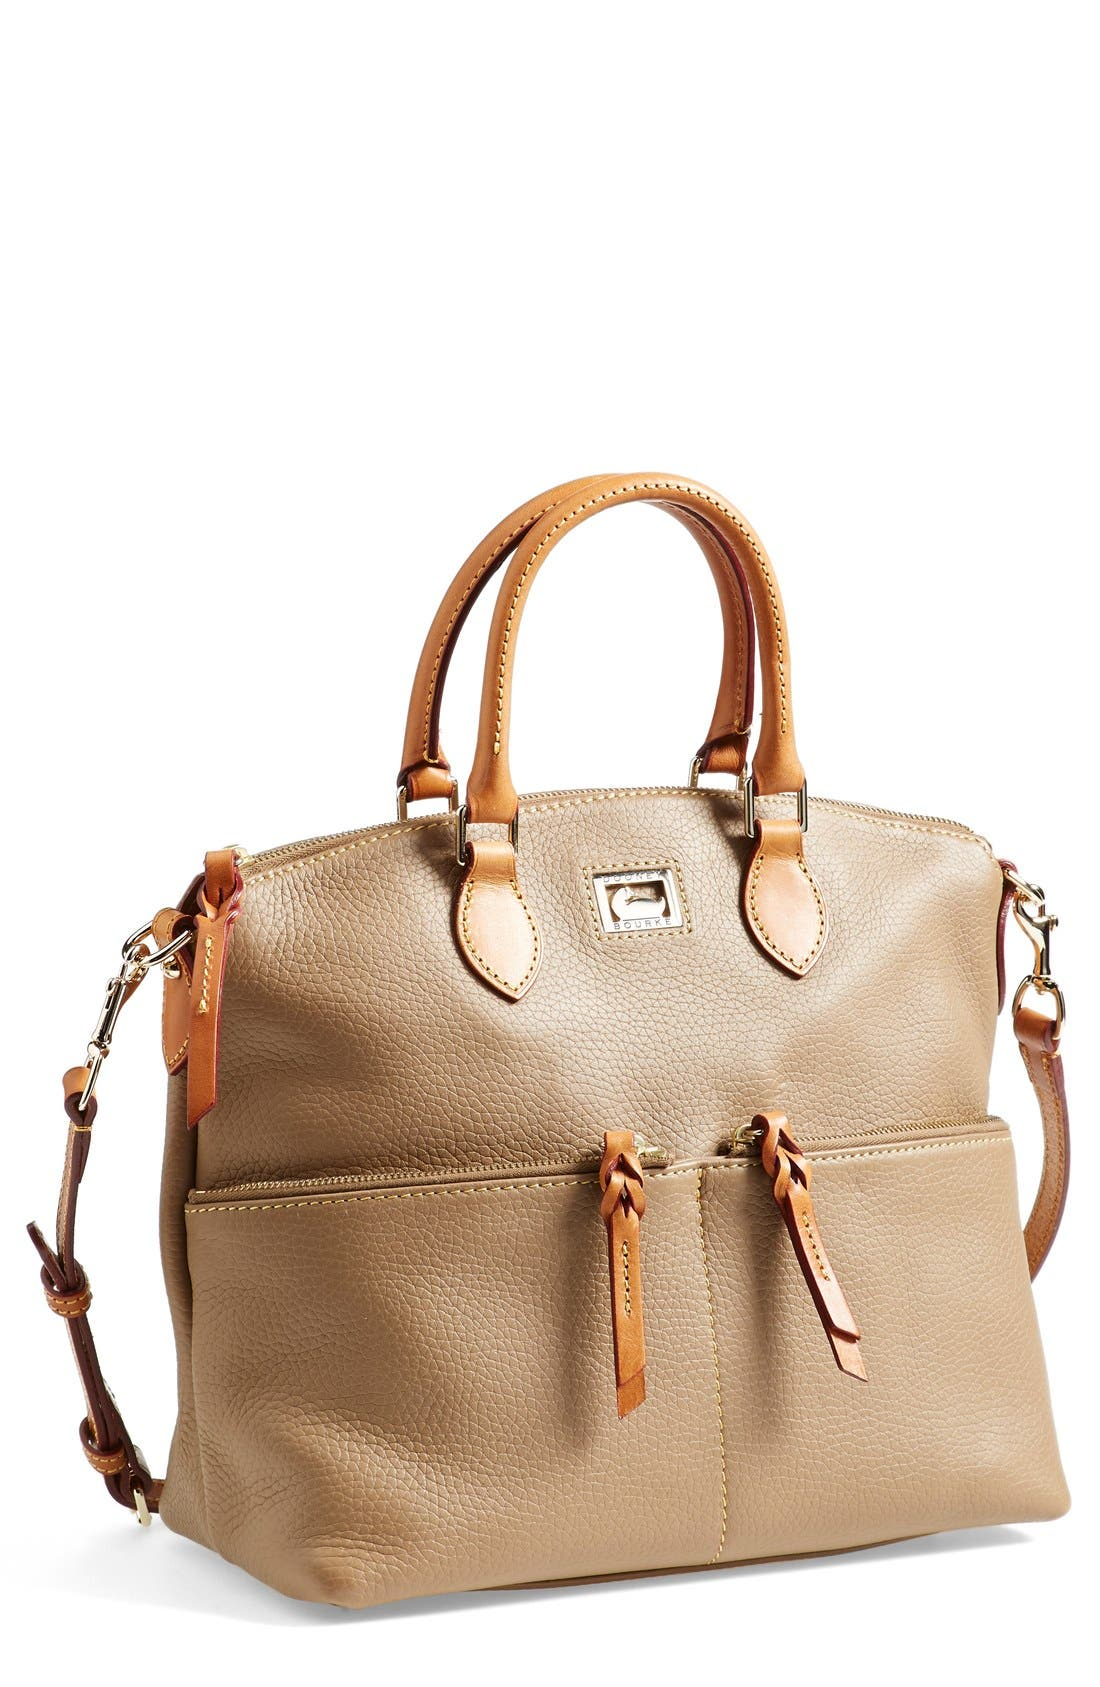 Main Image - Dooney & Bourke 'Dillen' Zip Pocket Satchel (Online Only)